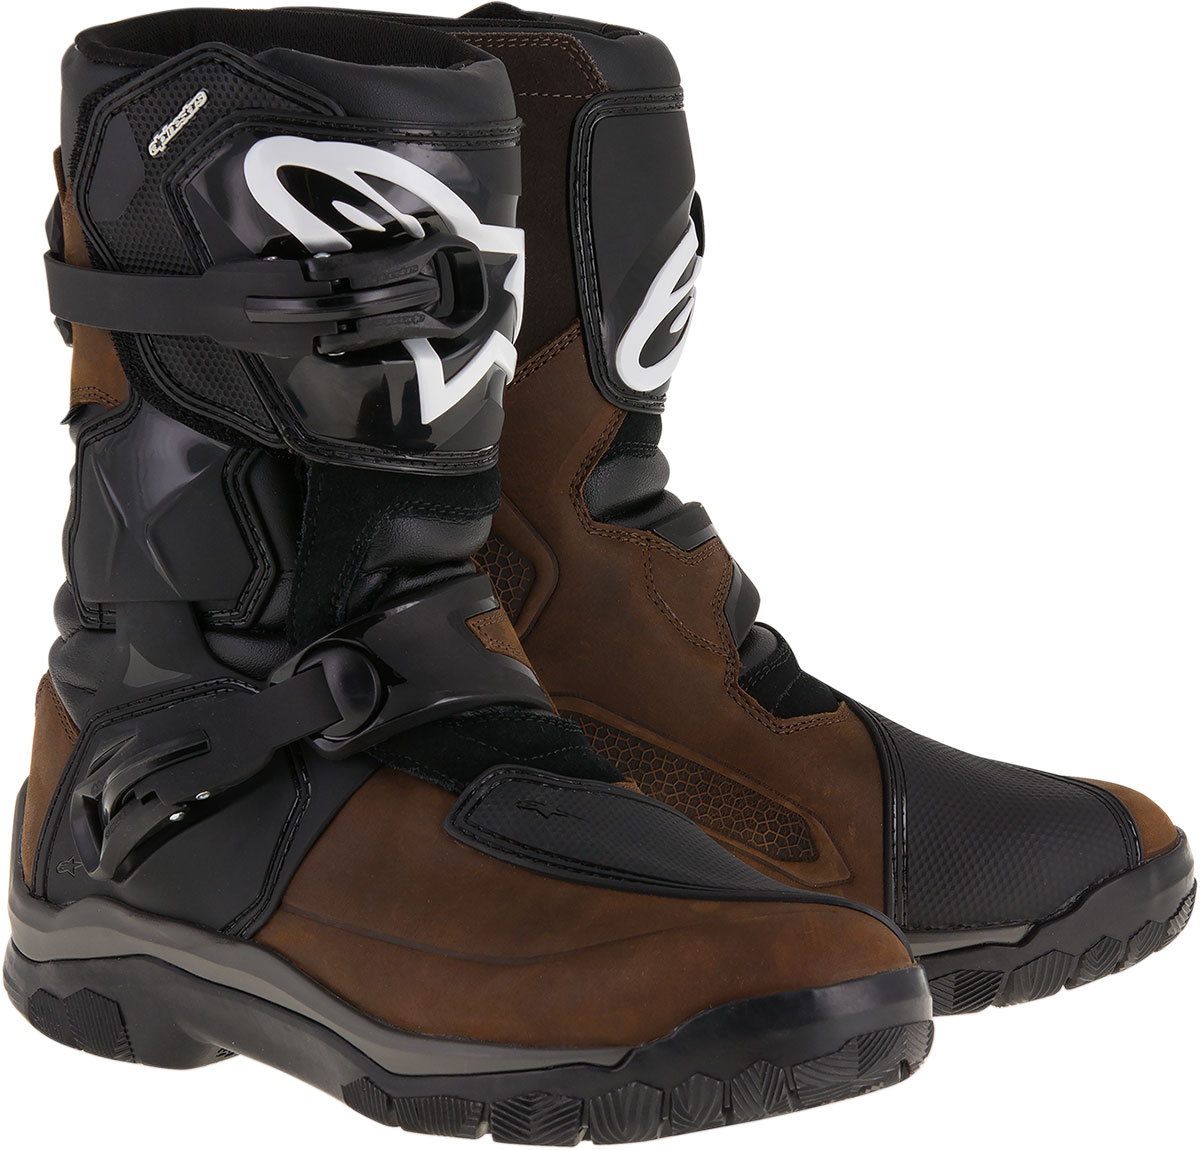 Alpinestars BELIZE Drystar Oiled Leather Touring Boots (Brown)